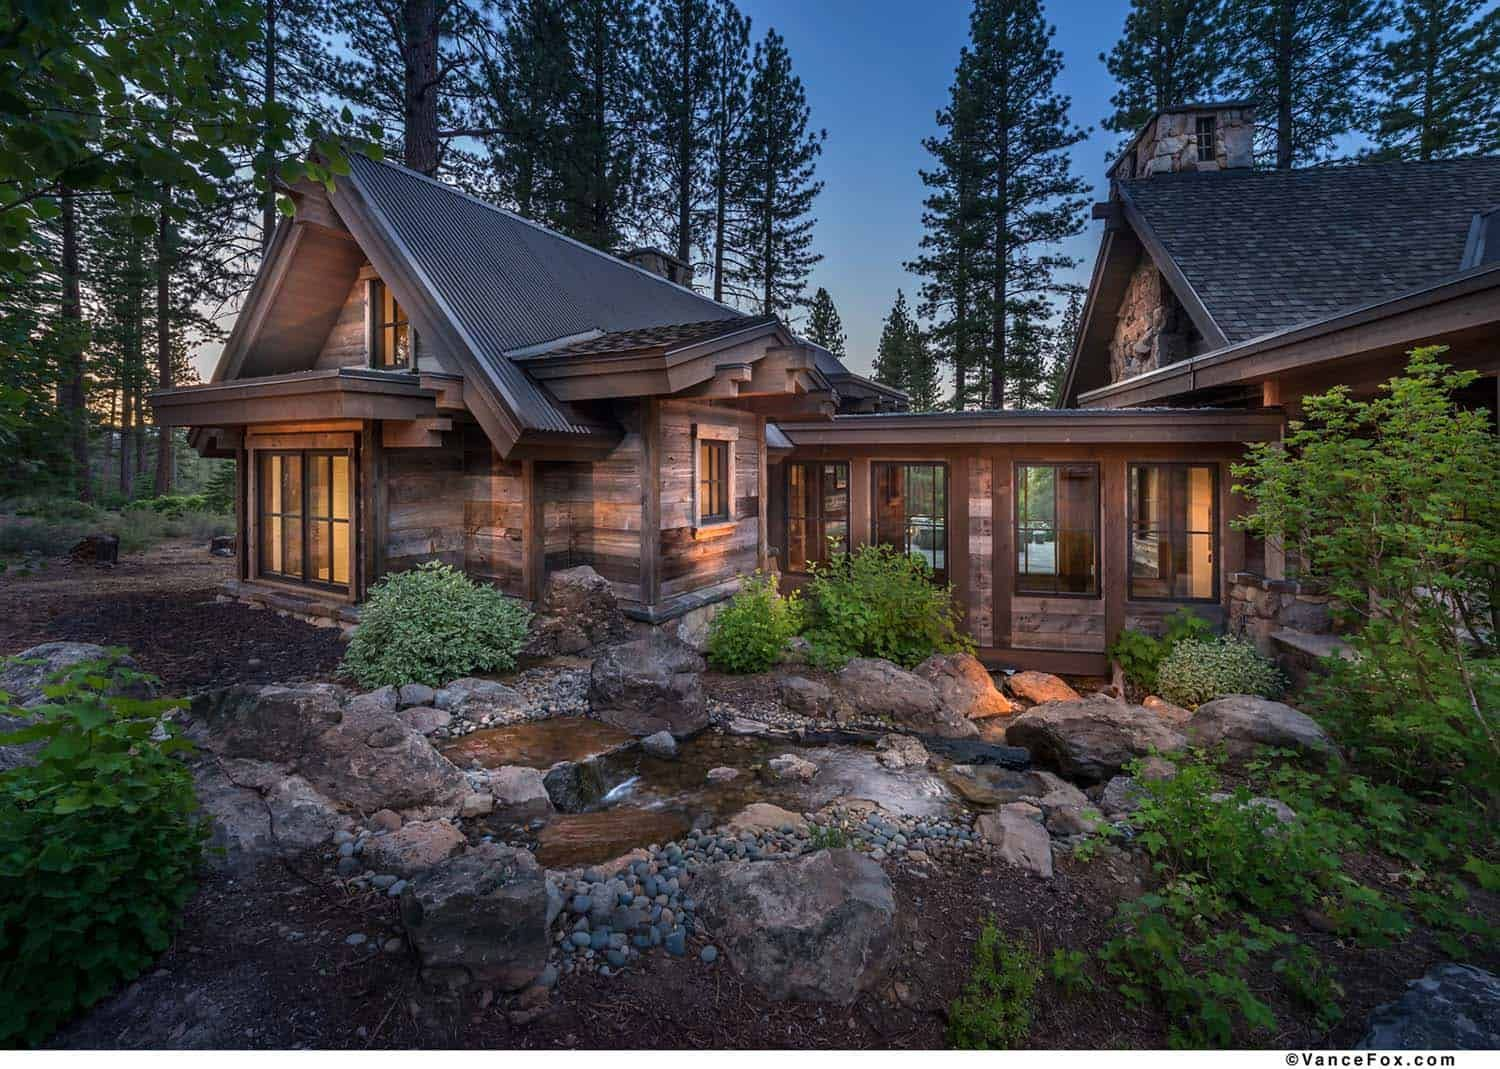 Wonderful Rustic Mountain Farmhouse Retreat In Scenic Martis Valley Mountain House Plans House Plans Farmhouse Mountain House